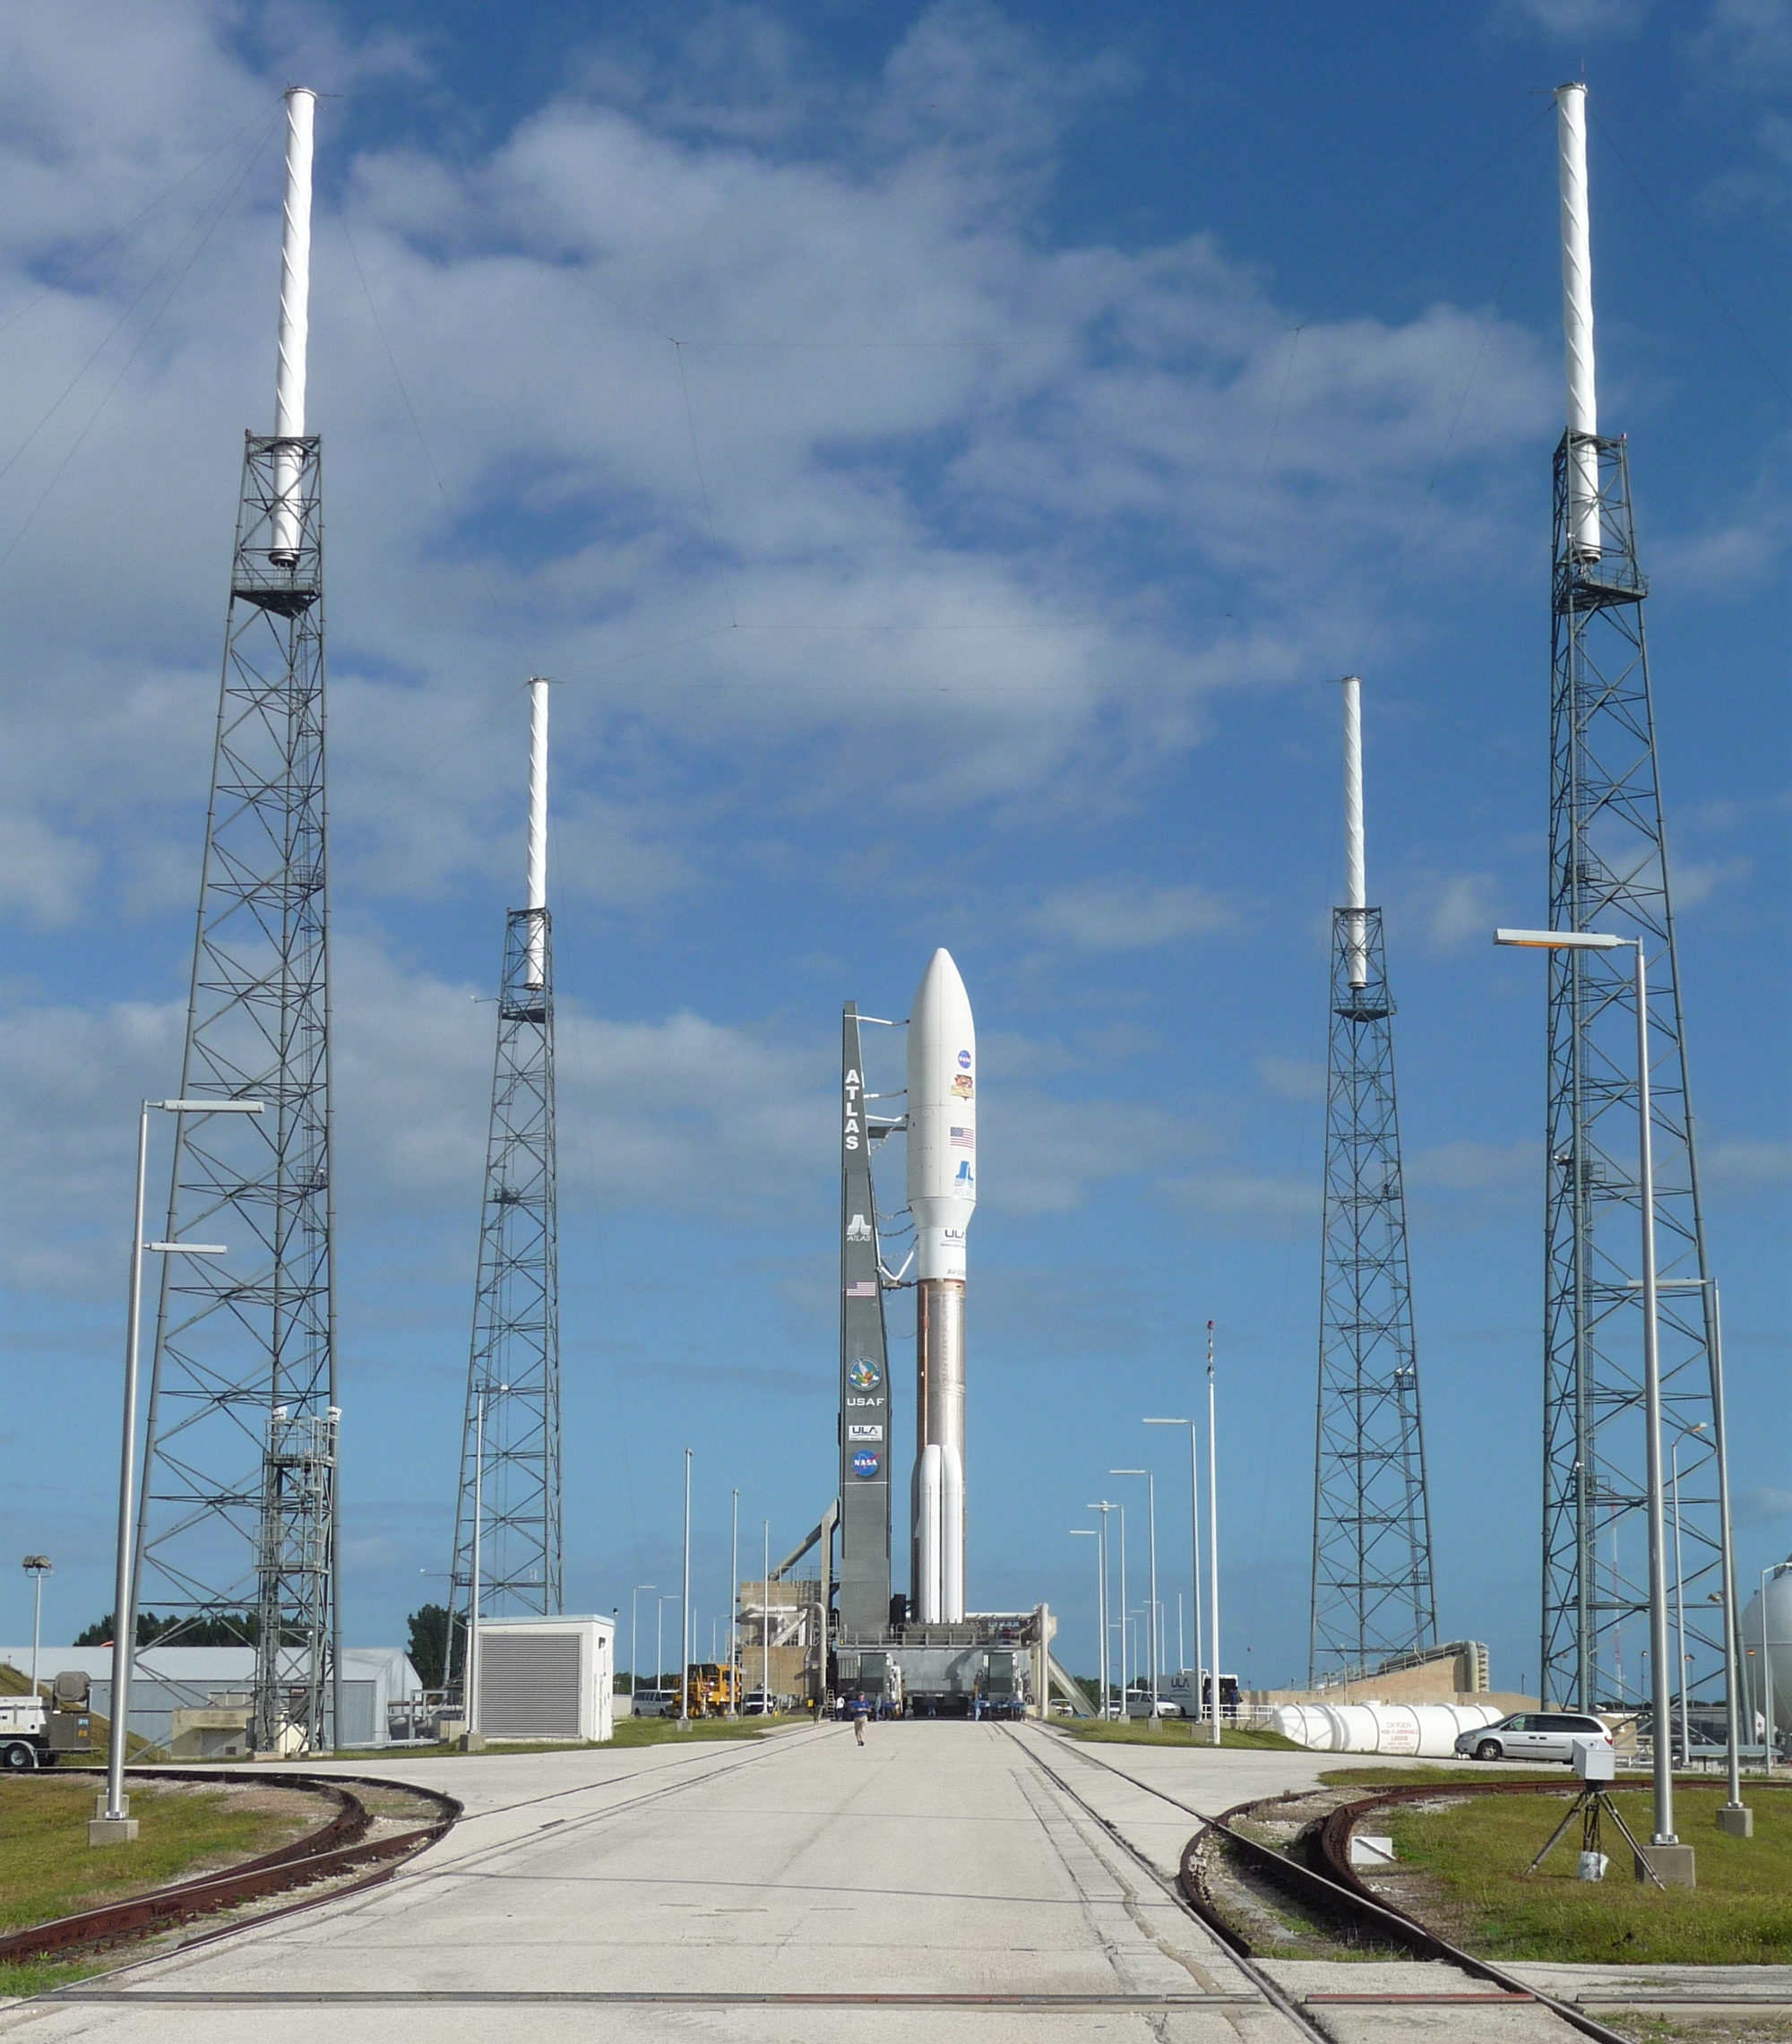 Curiosity's Atlas 5 Rocket